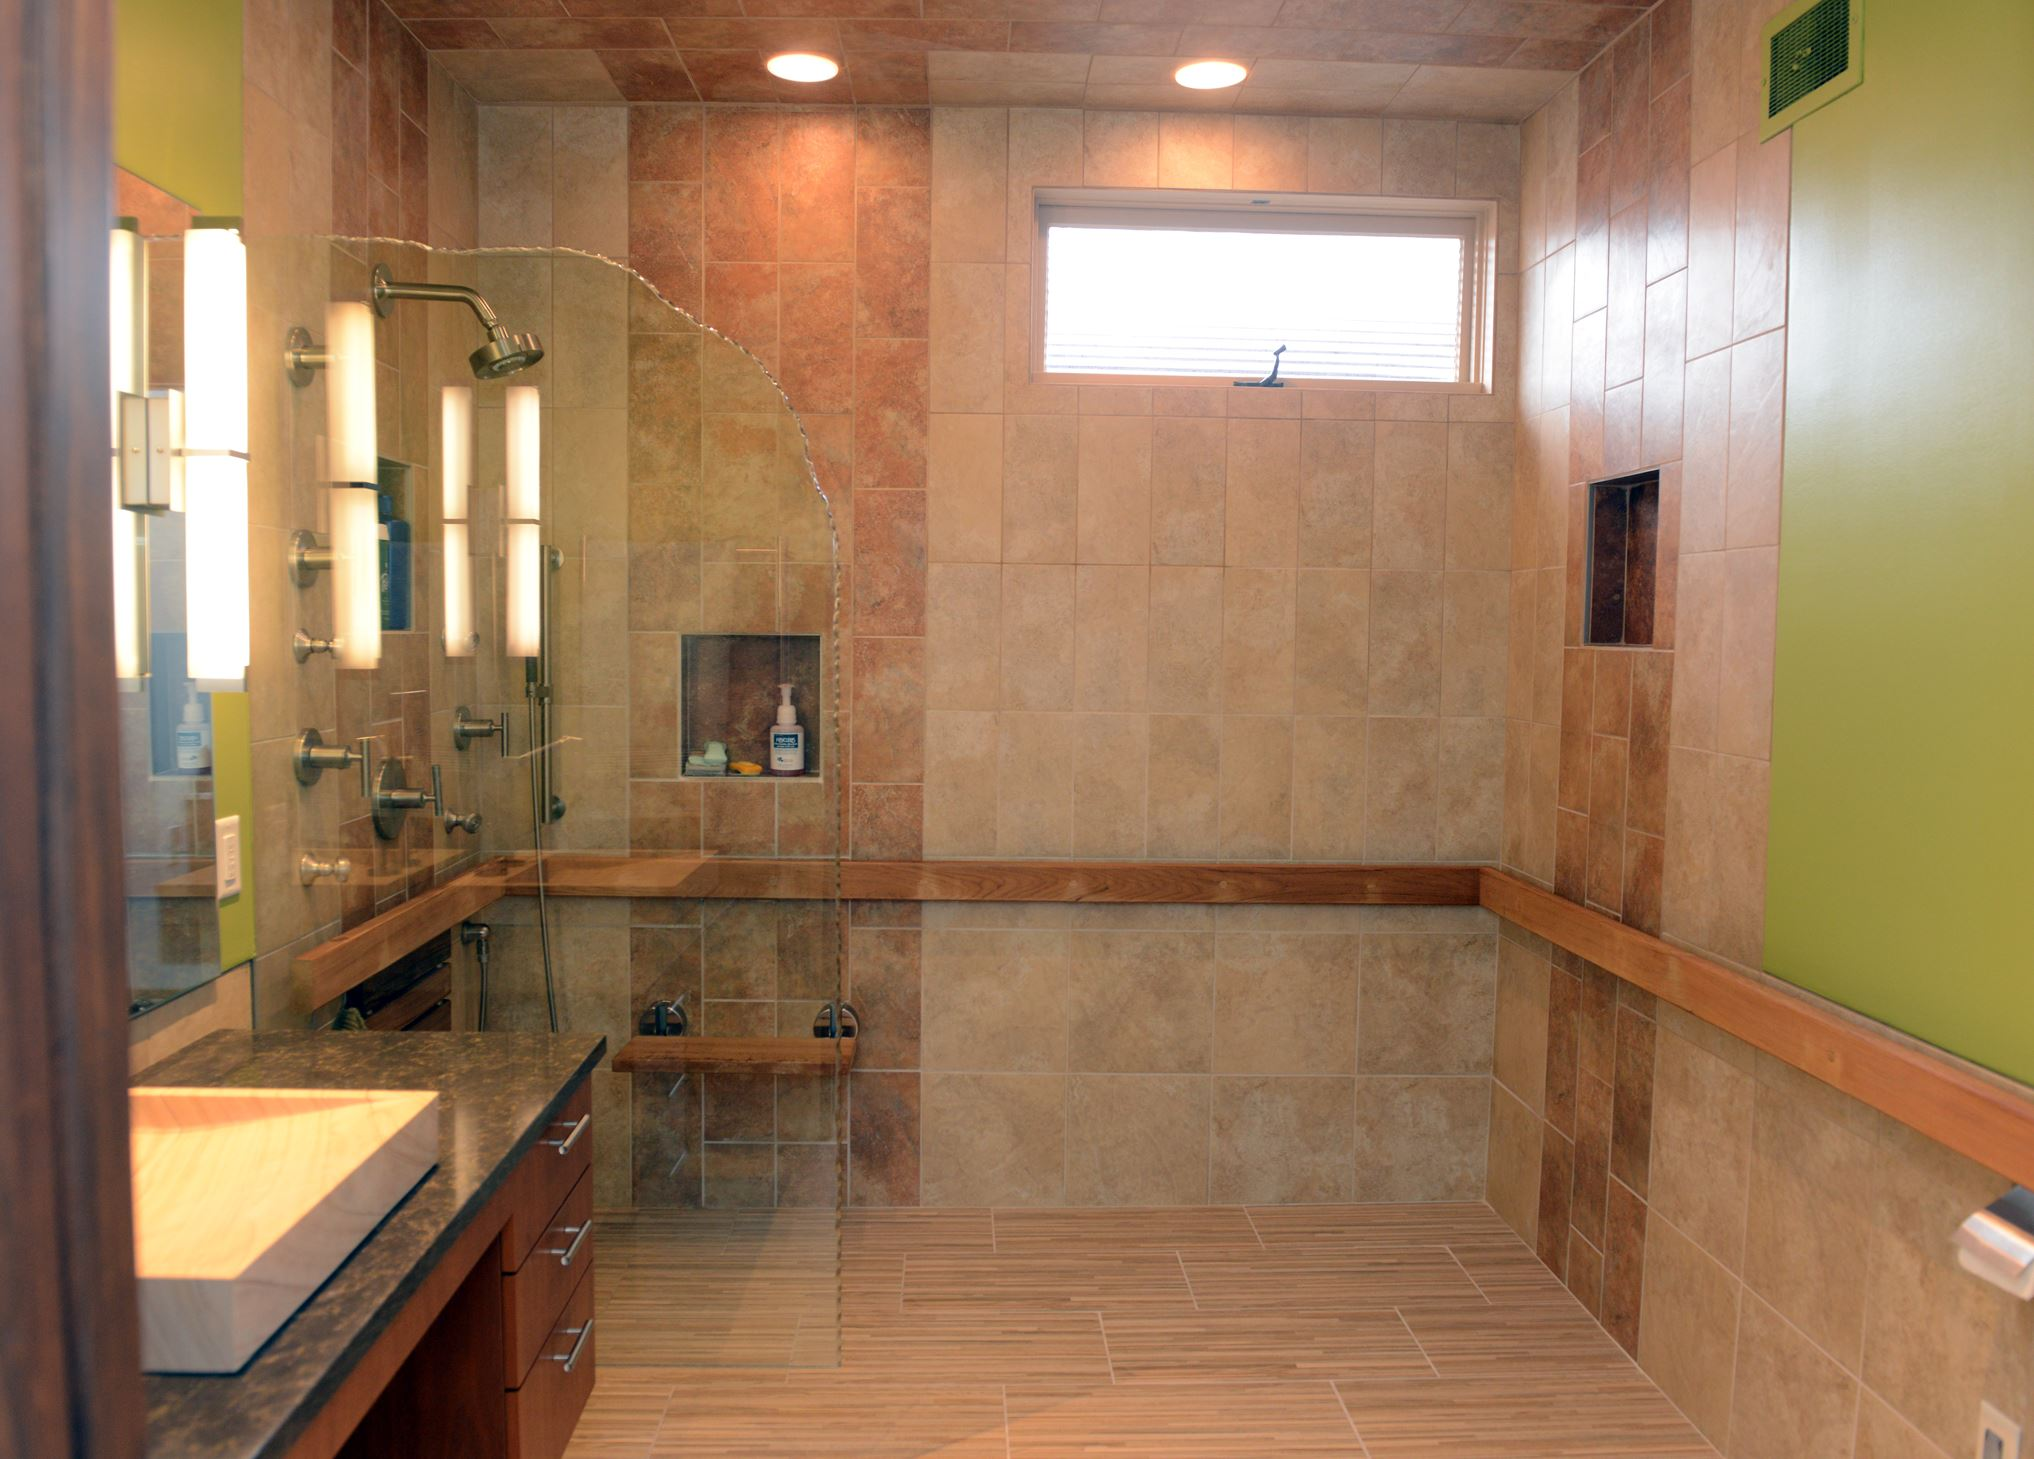 39 Wet Room 39 Bath Renovation Allows Couple To Age In Place And In Style